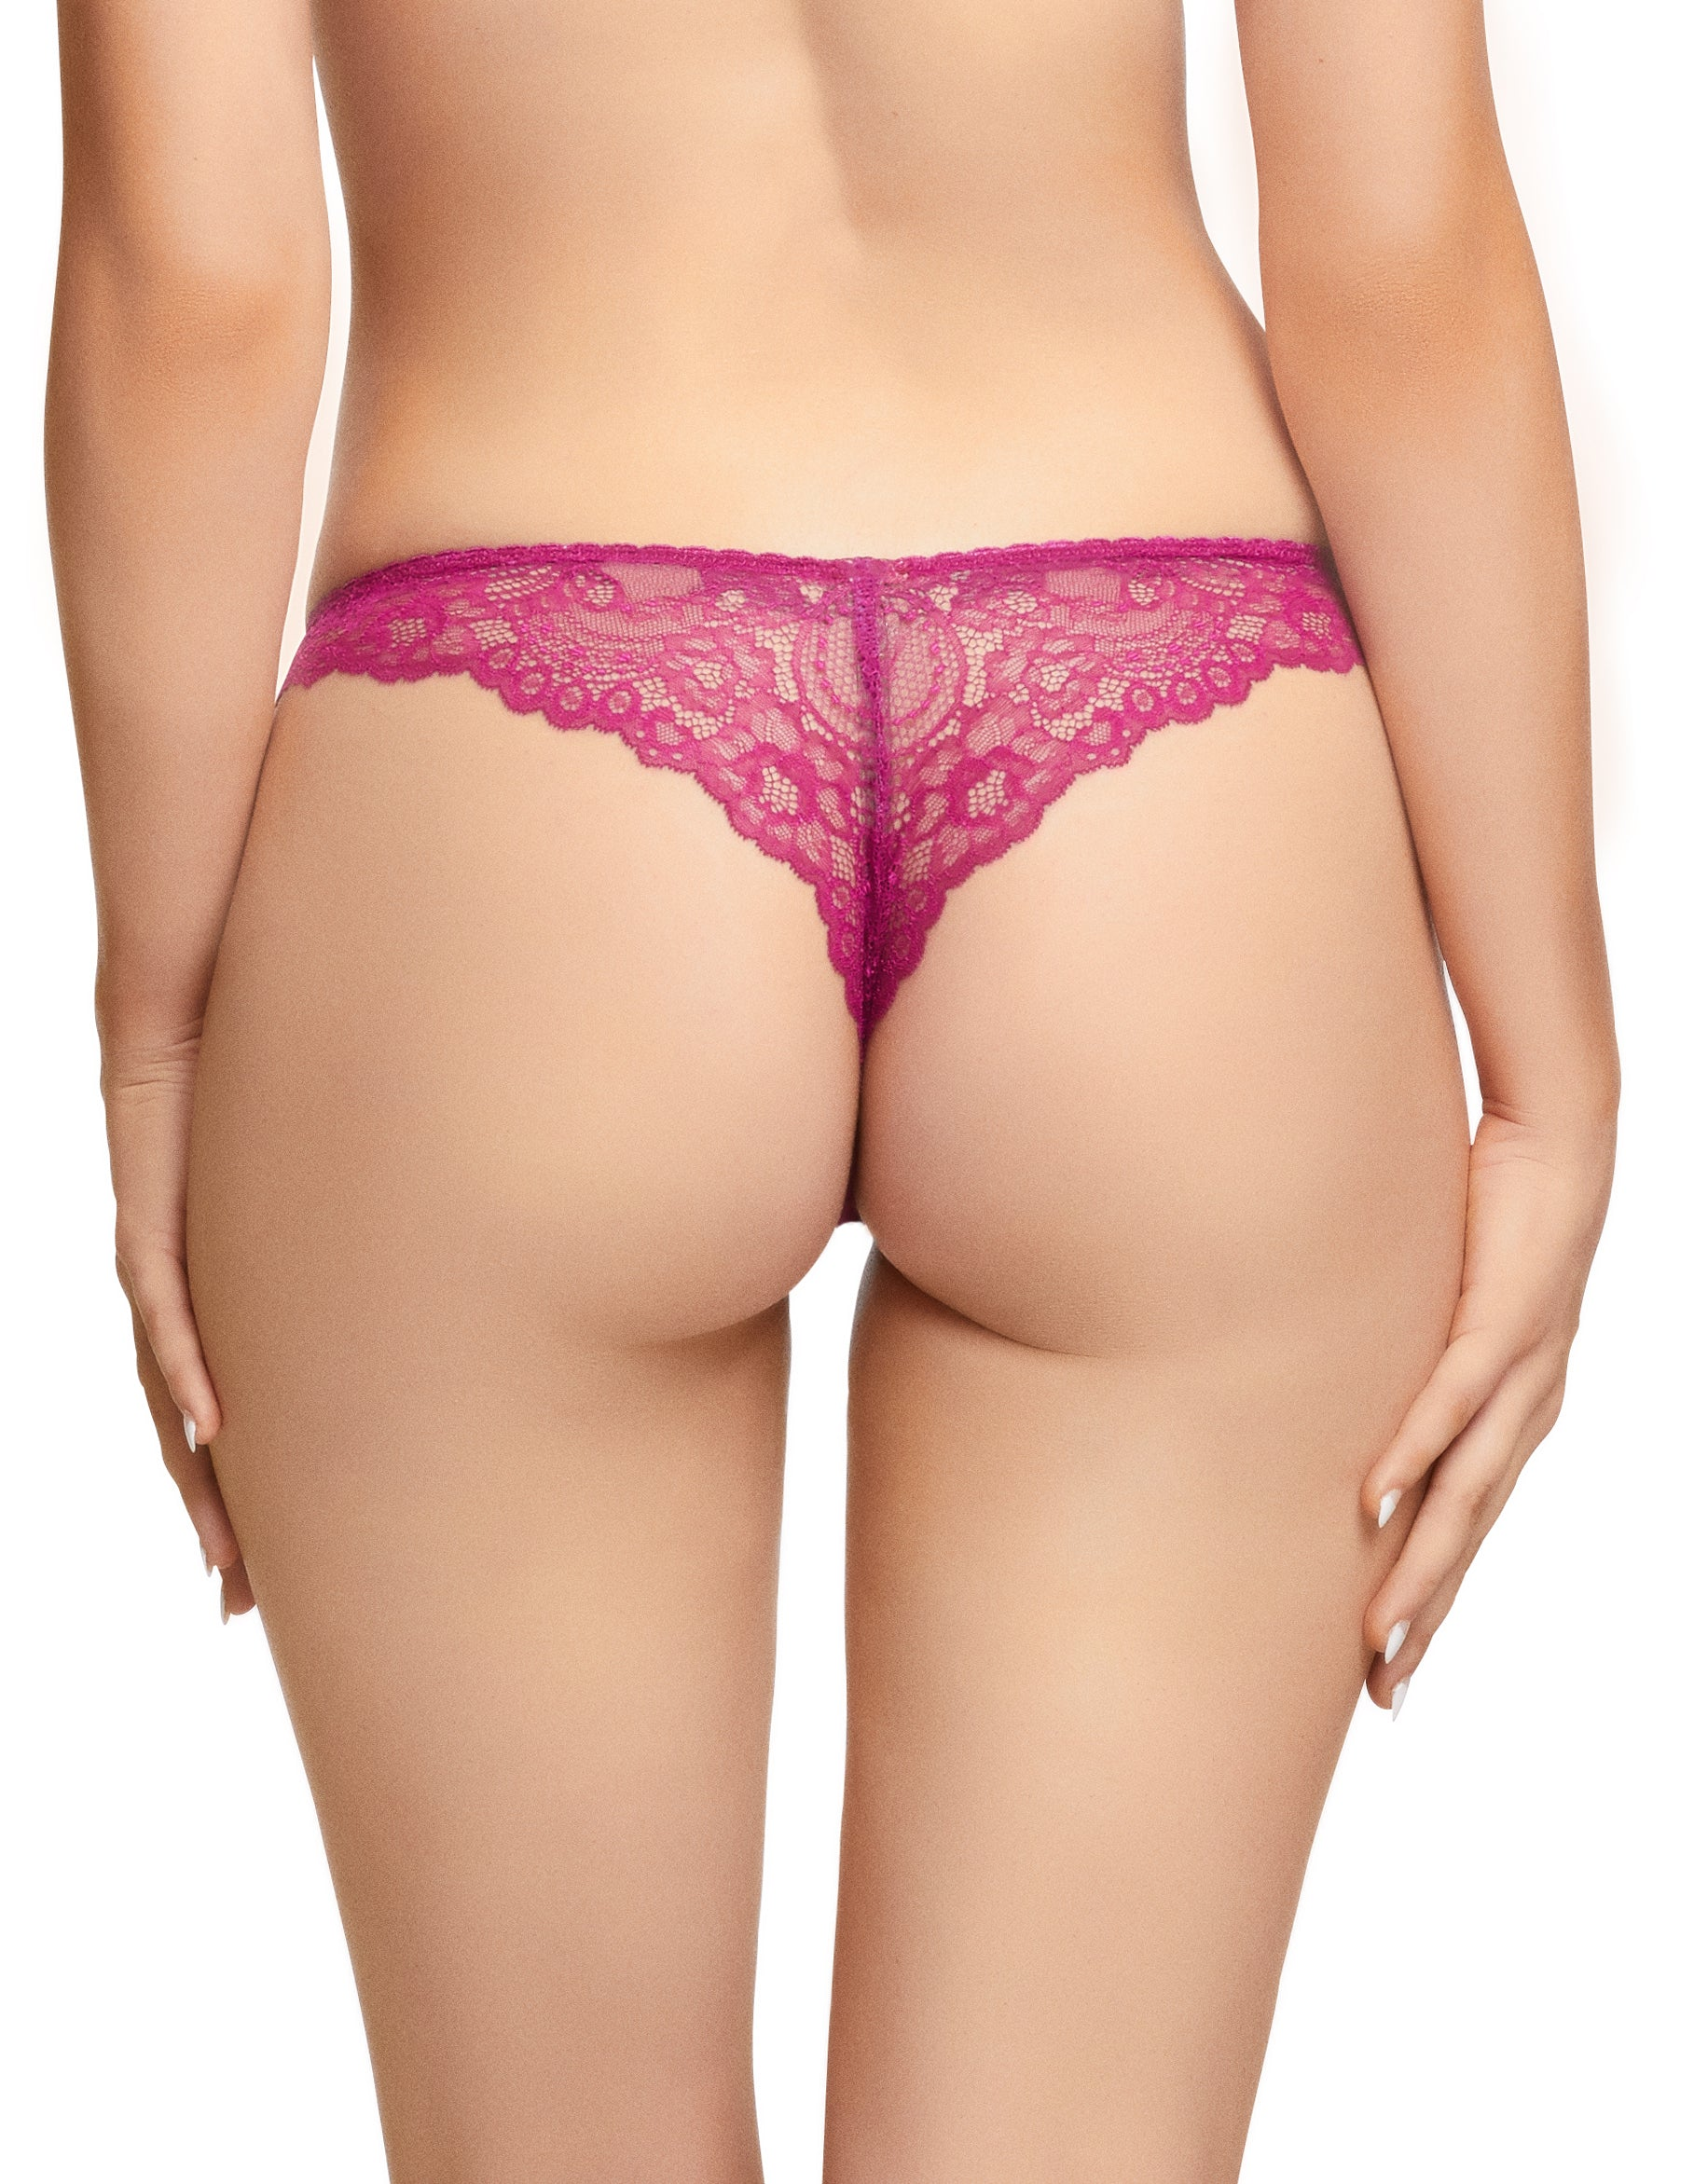 Dita Von Teese Fiamma Magenta Thong - sizes XS-M left!